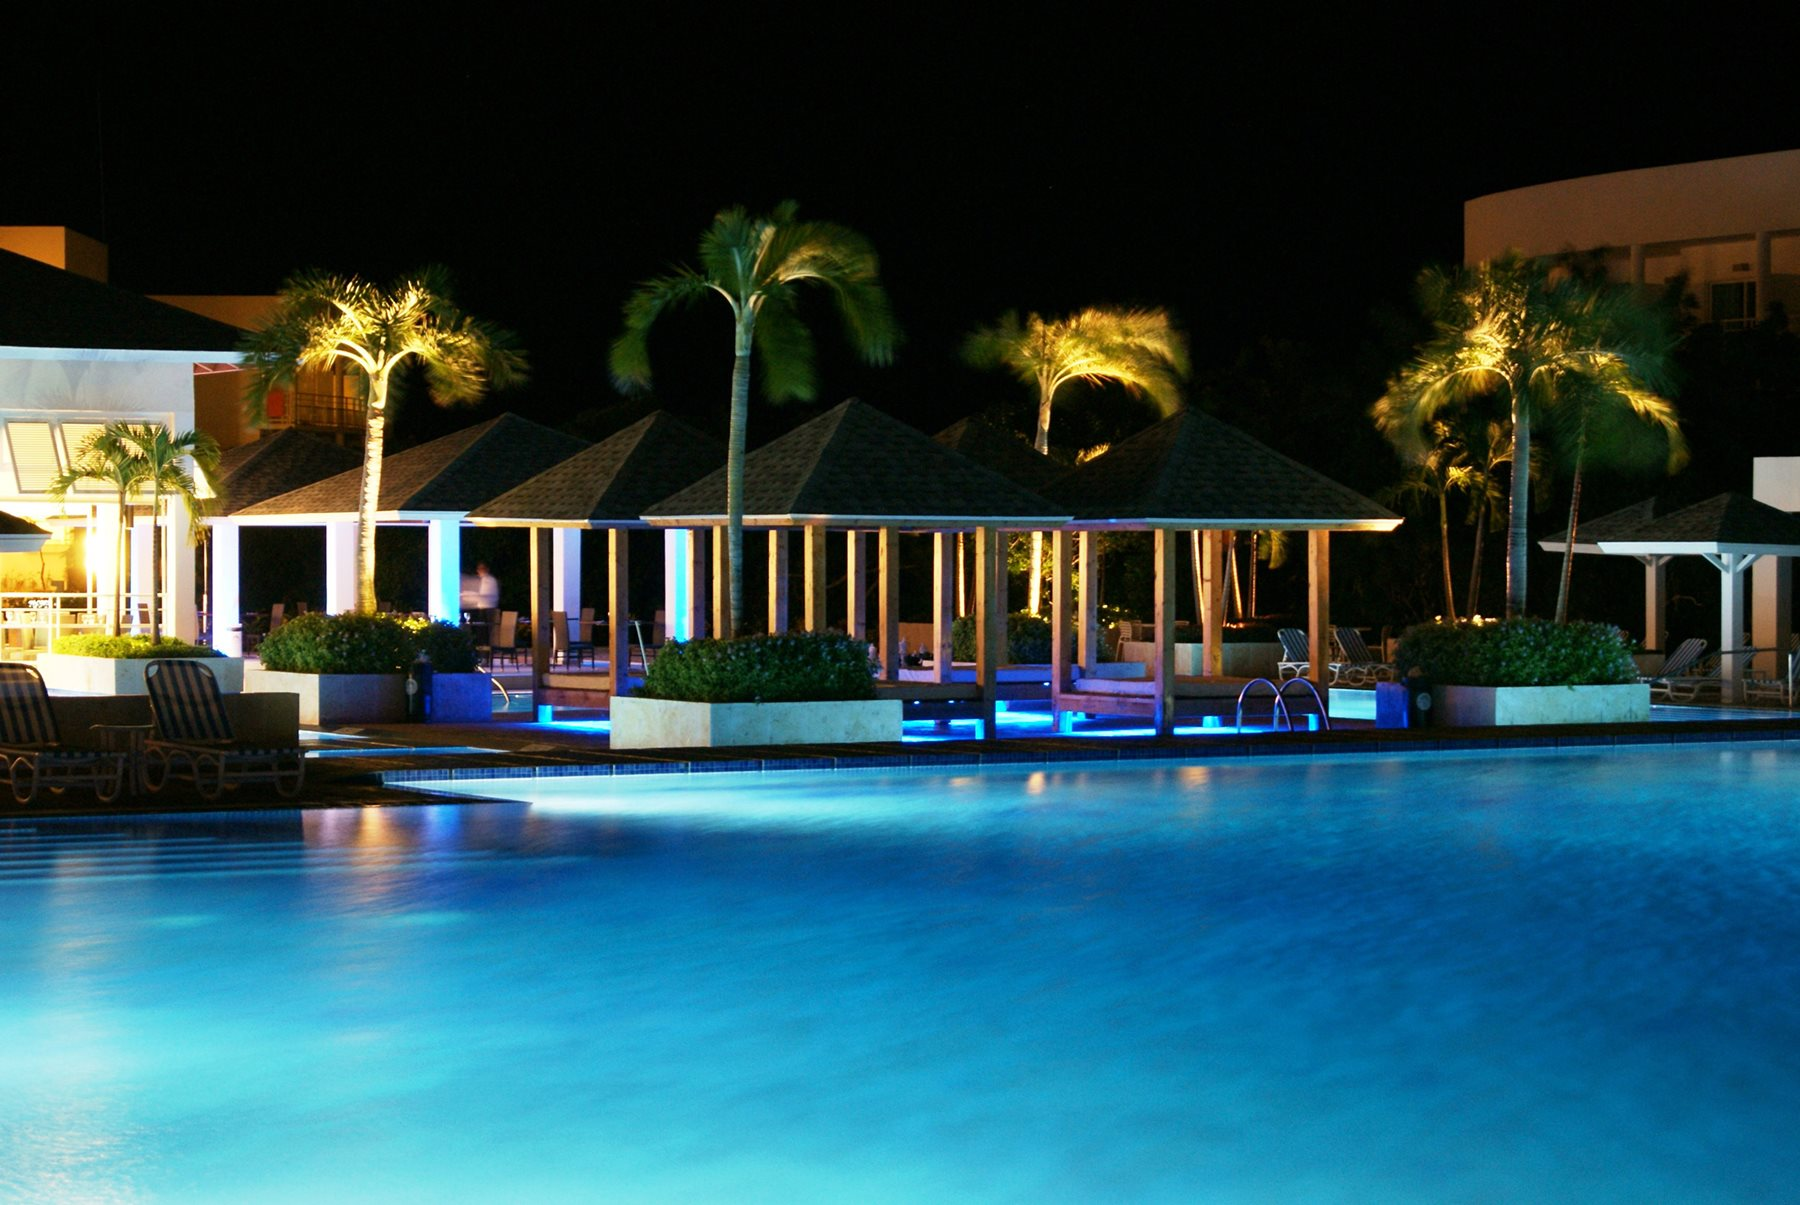 Valentin-Perla-Blanca-Pool-Night-001